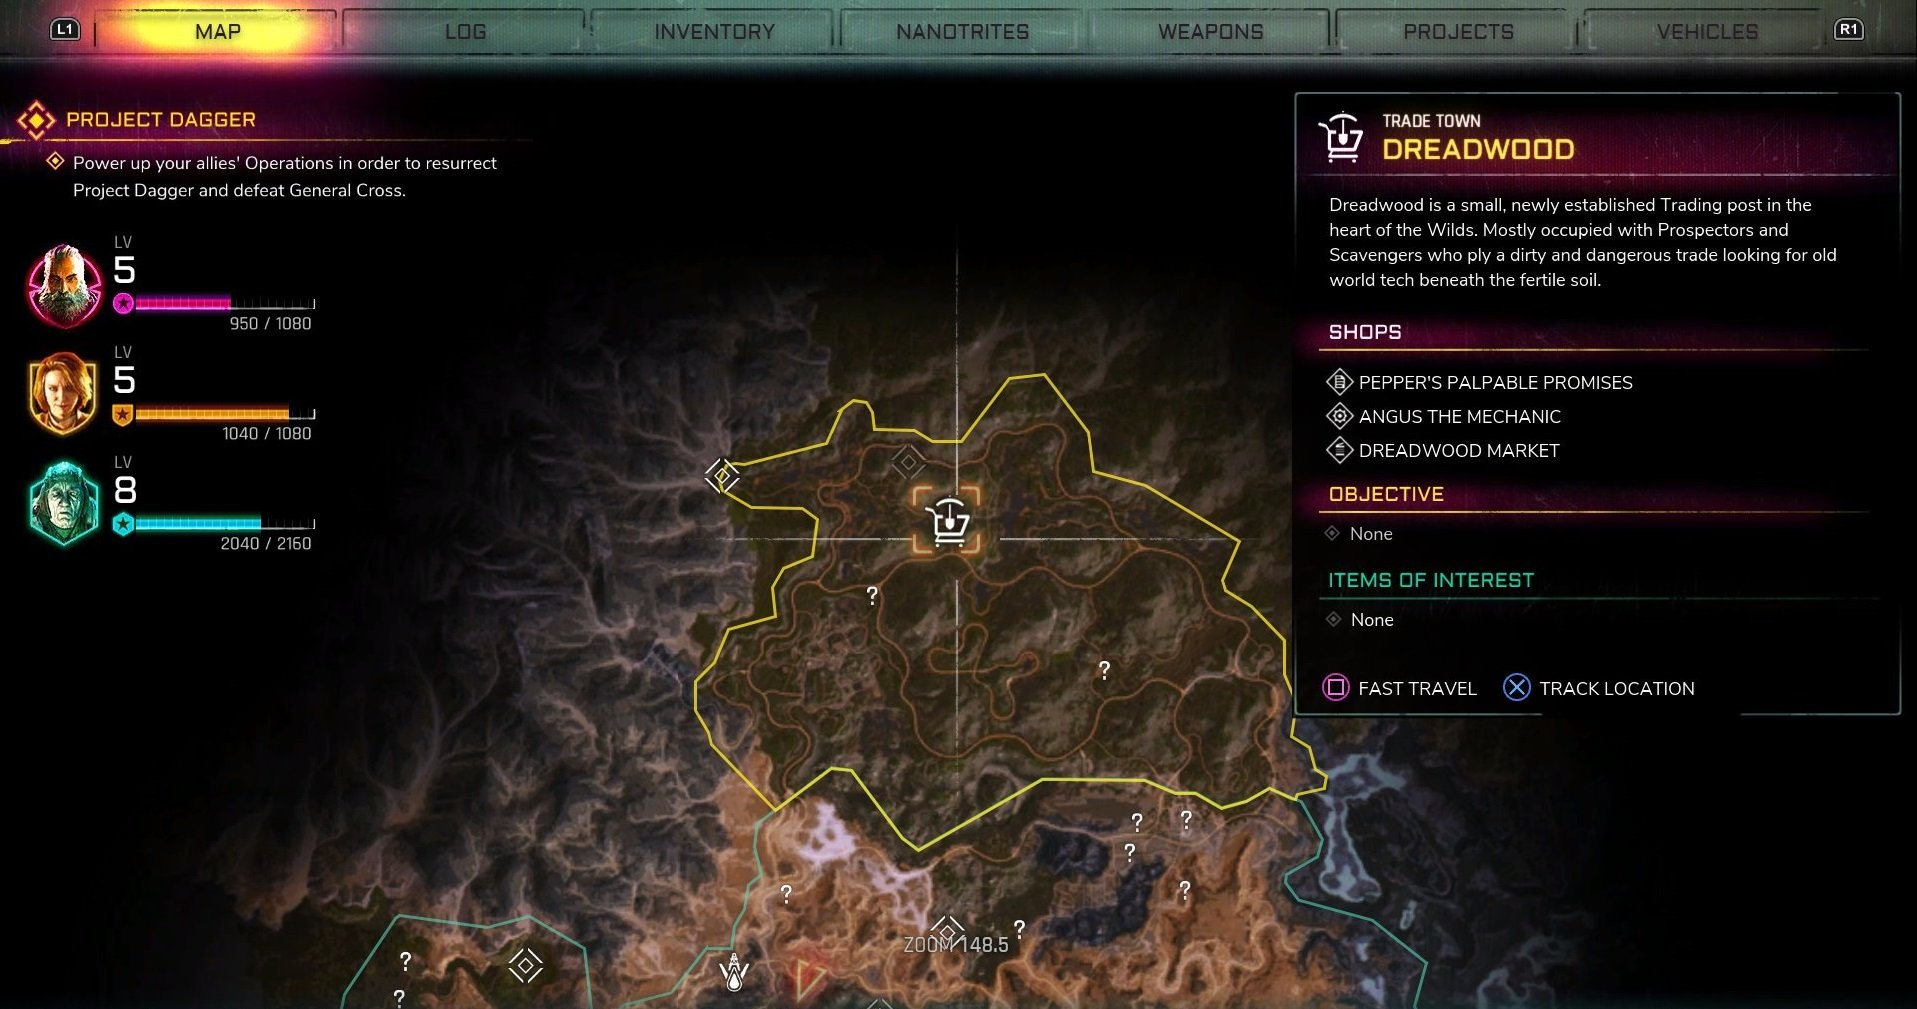 Dreadwood is located in the northern region of The Wilds in Rage 2.